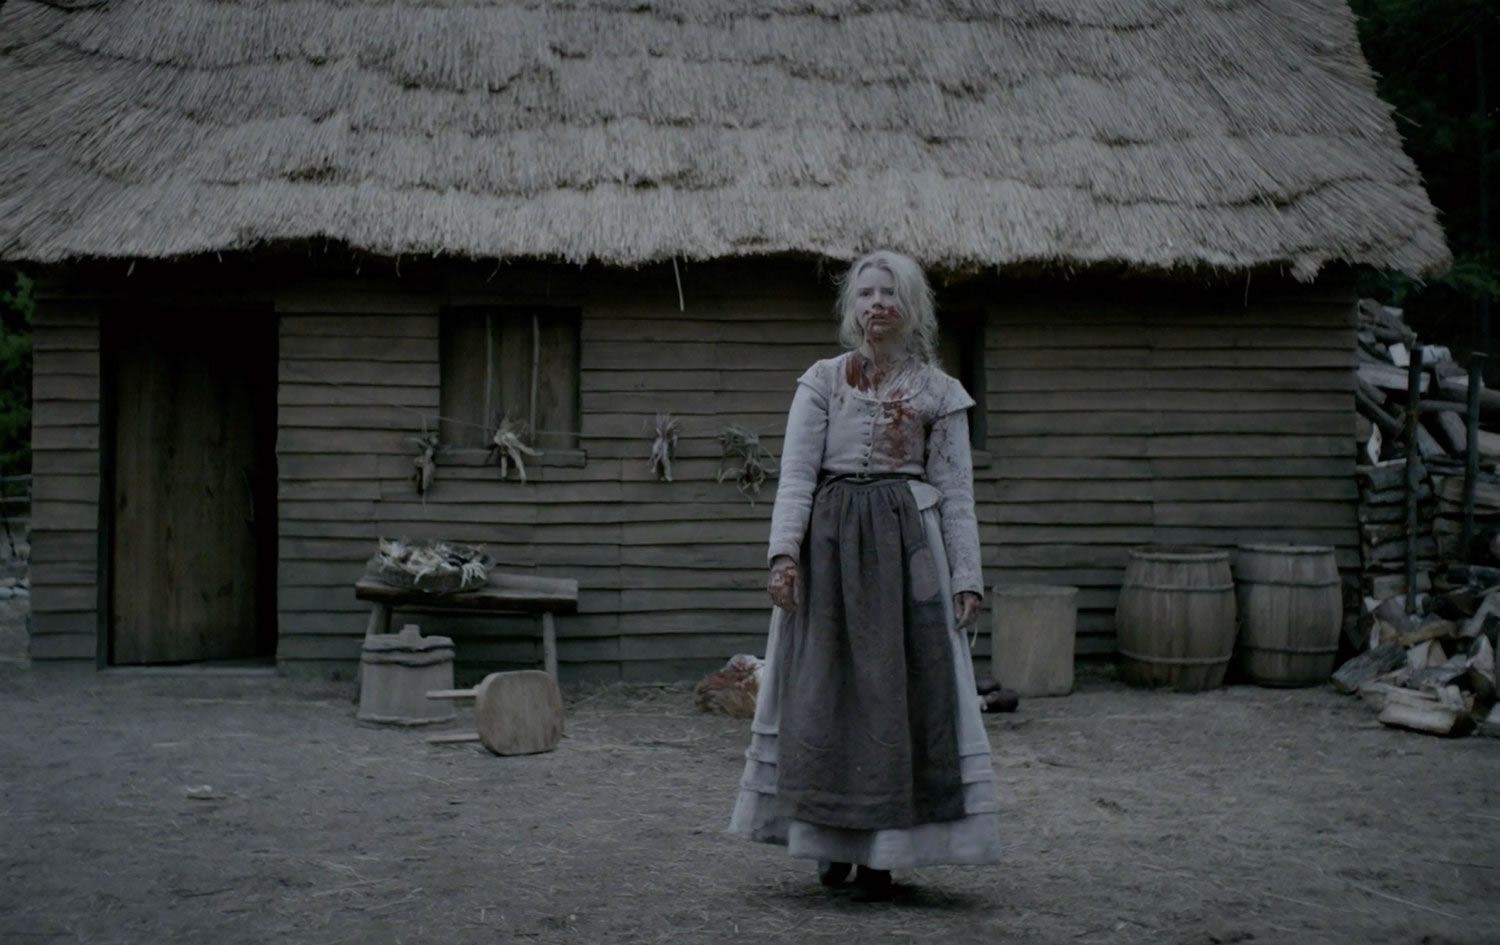 woman with blood on clothing in The witch movie